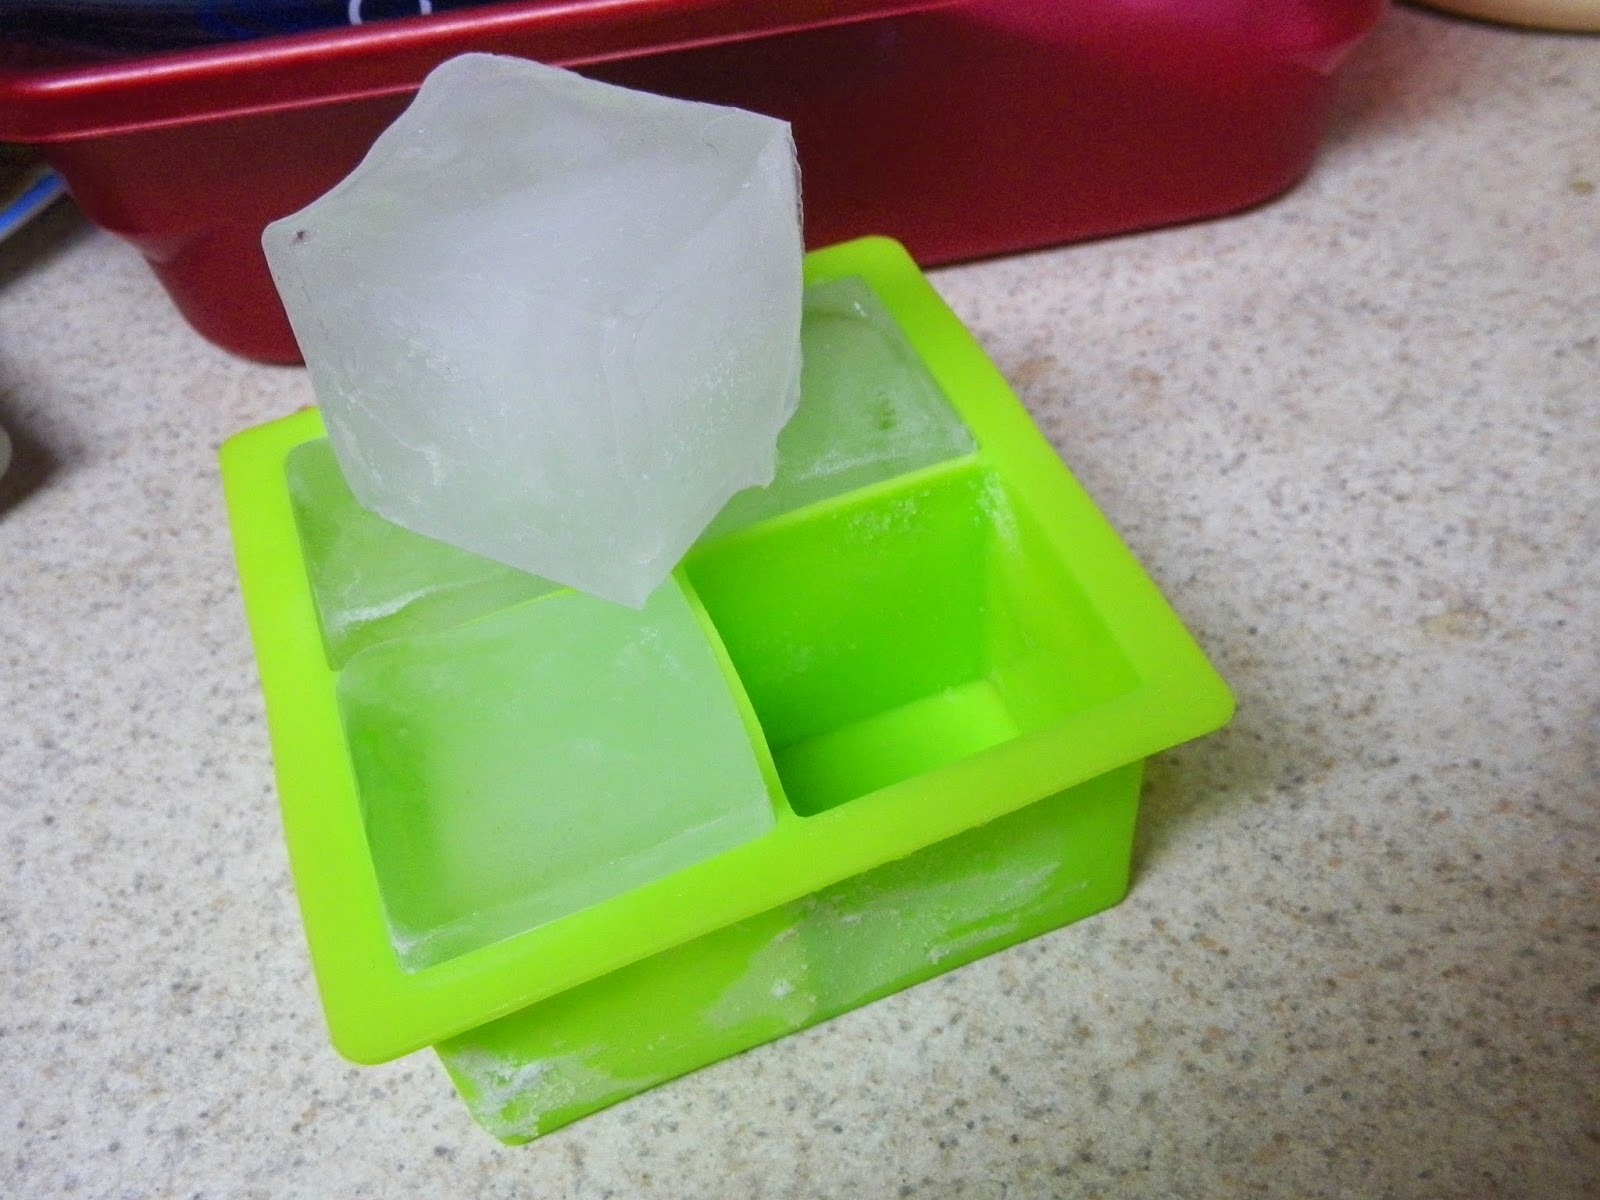 Kuuk_Large_Ice_Cube_Maker.jpg